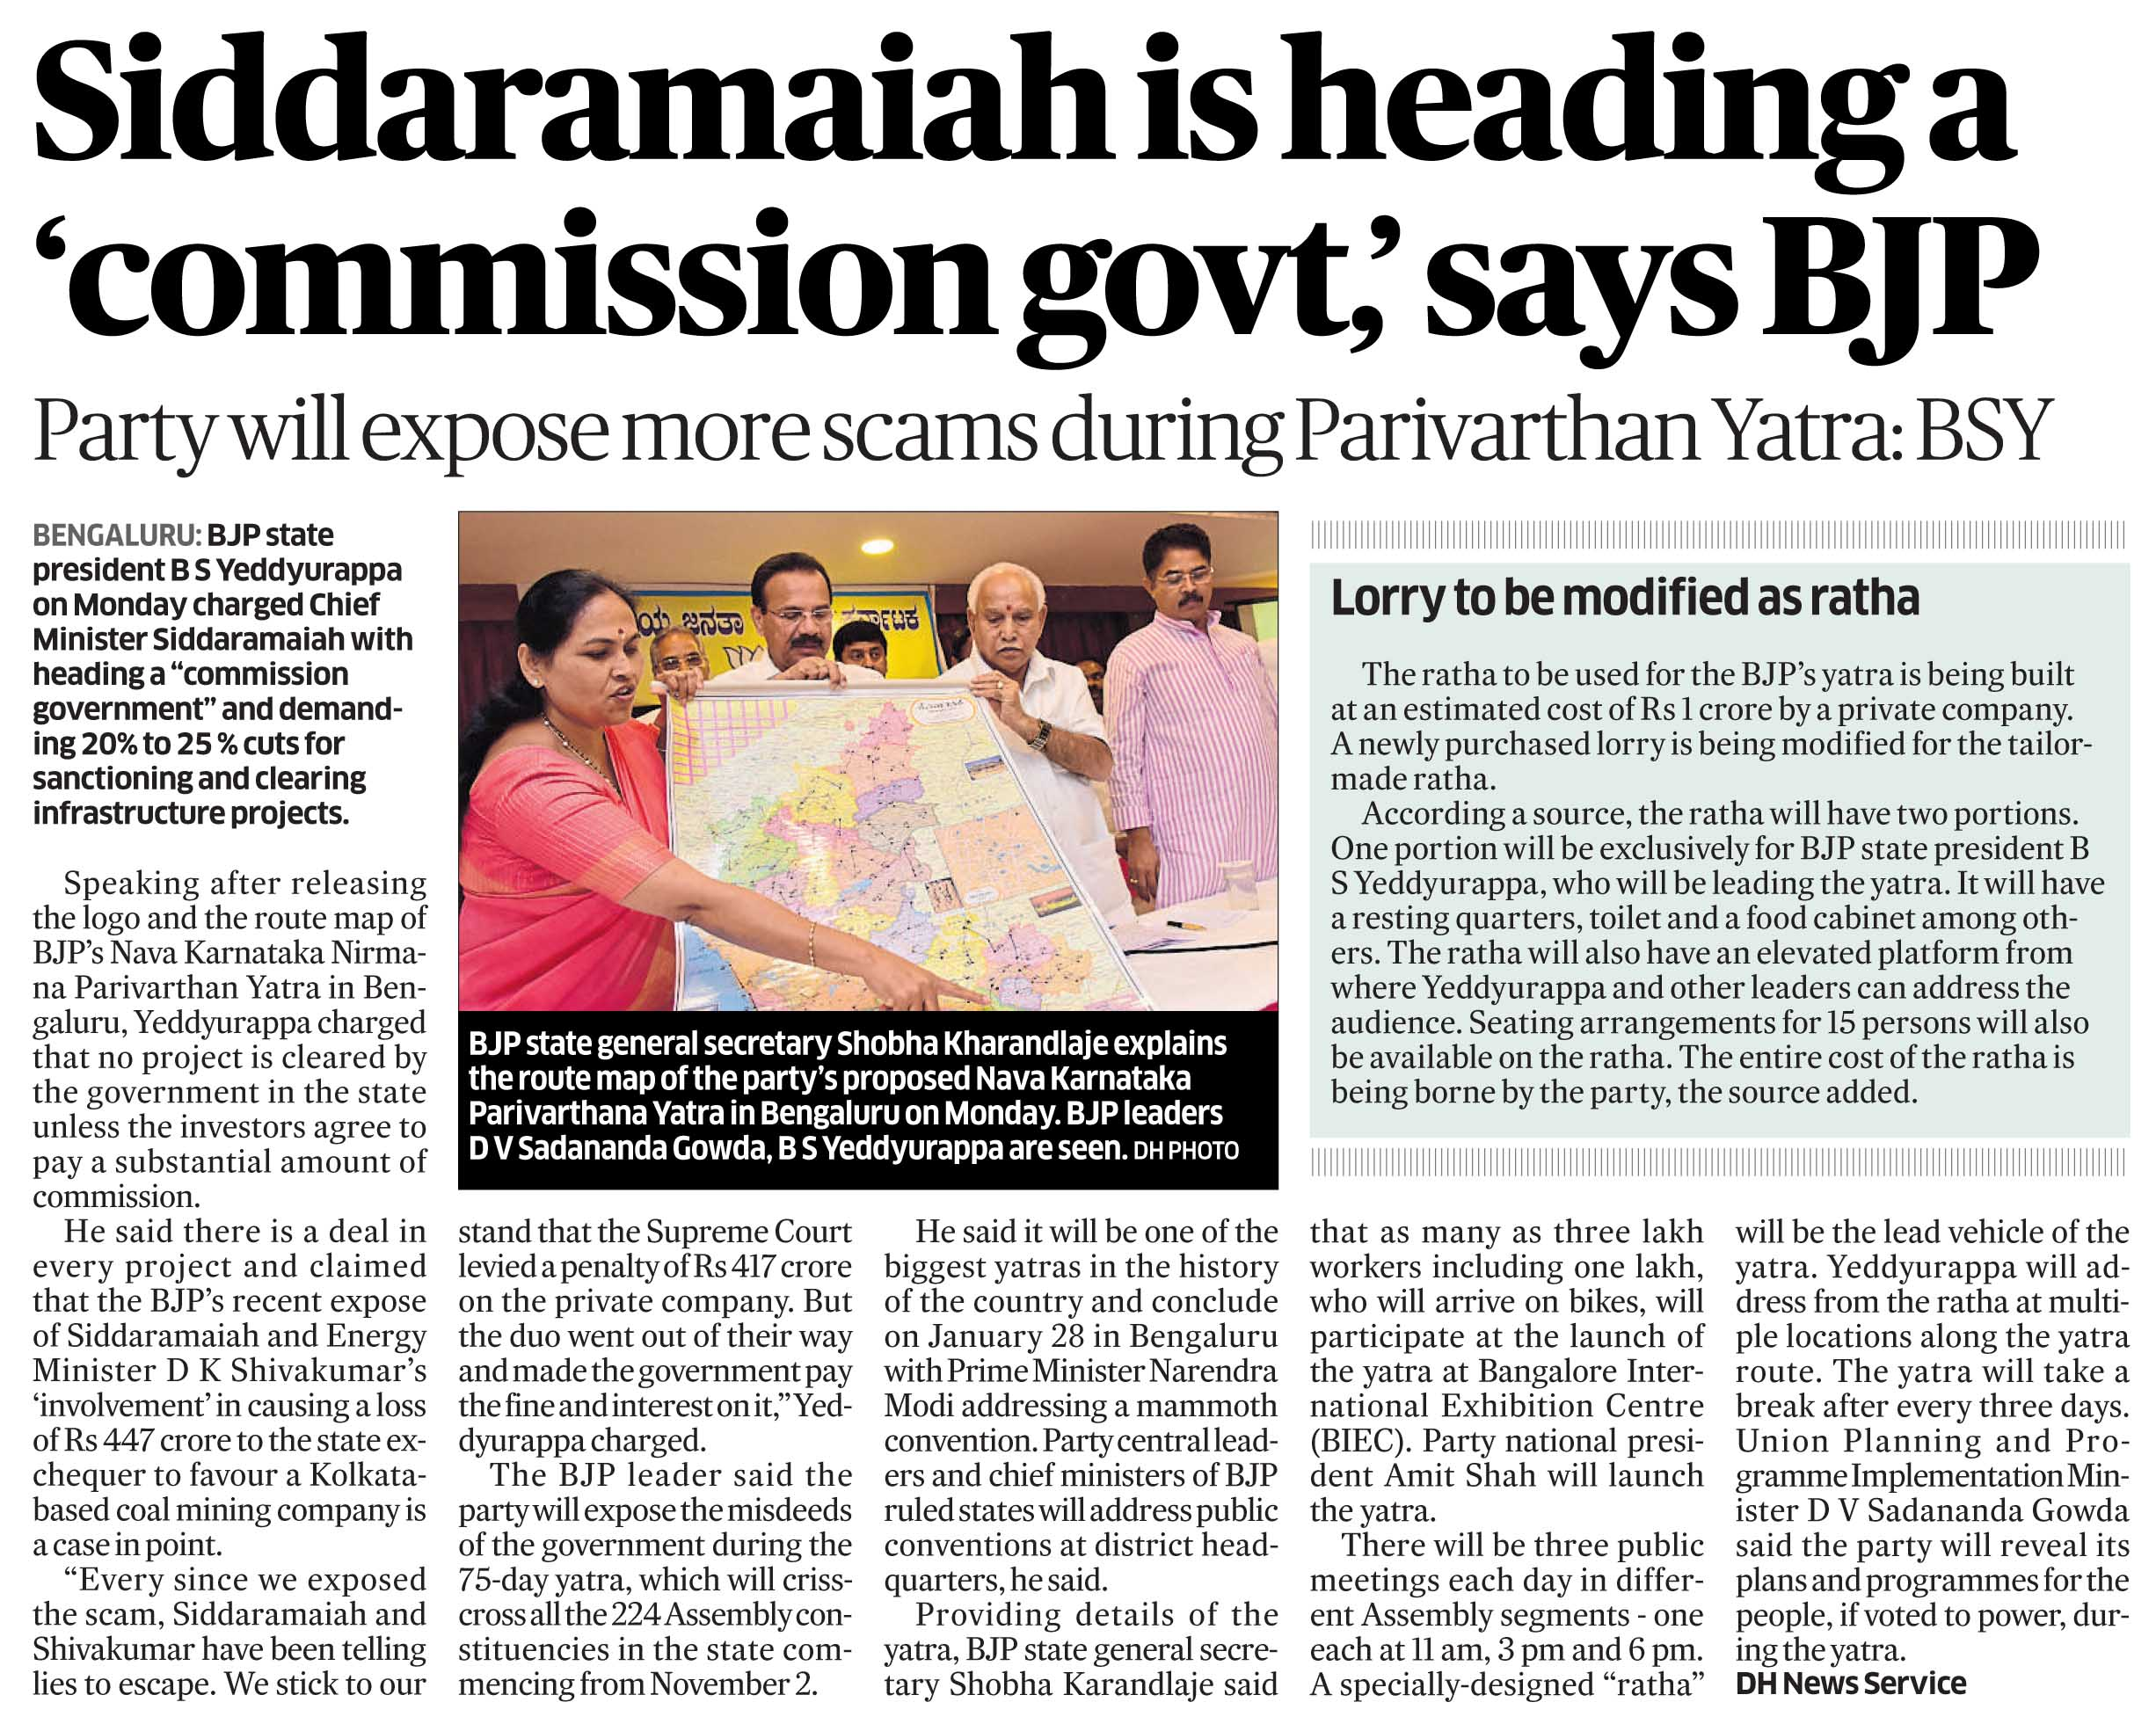 siddaramaiah is heading a 'commission govt', says BJP